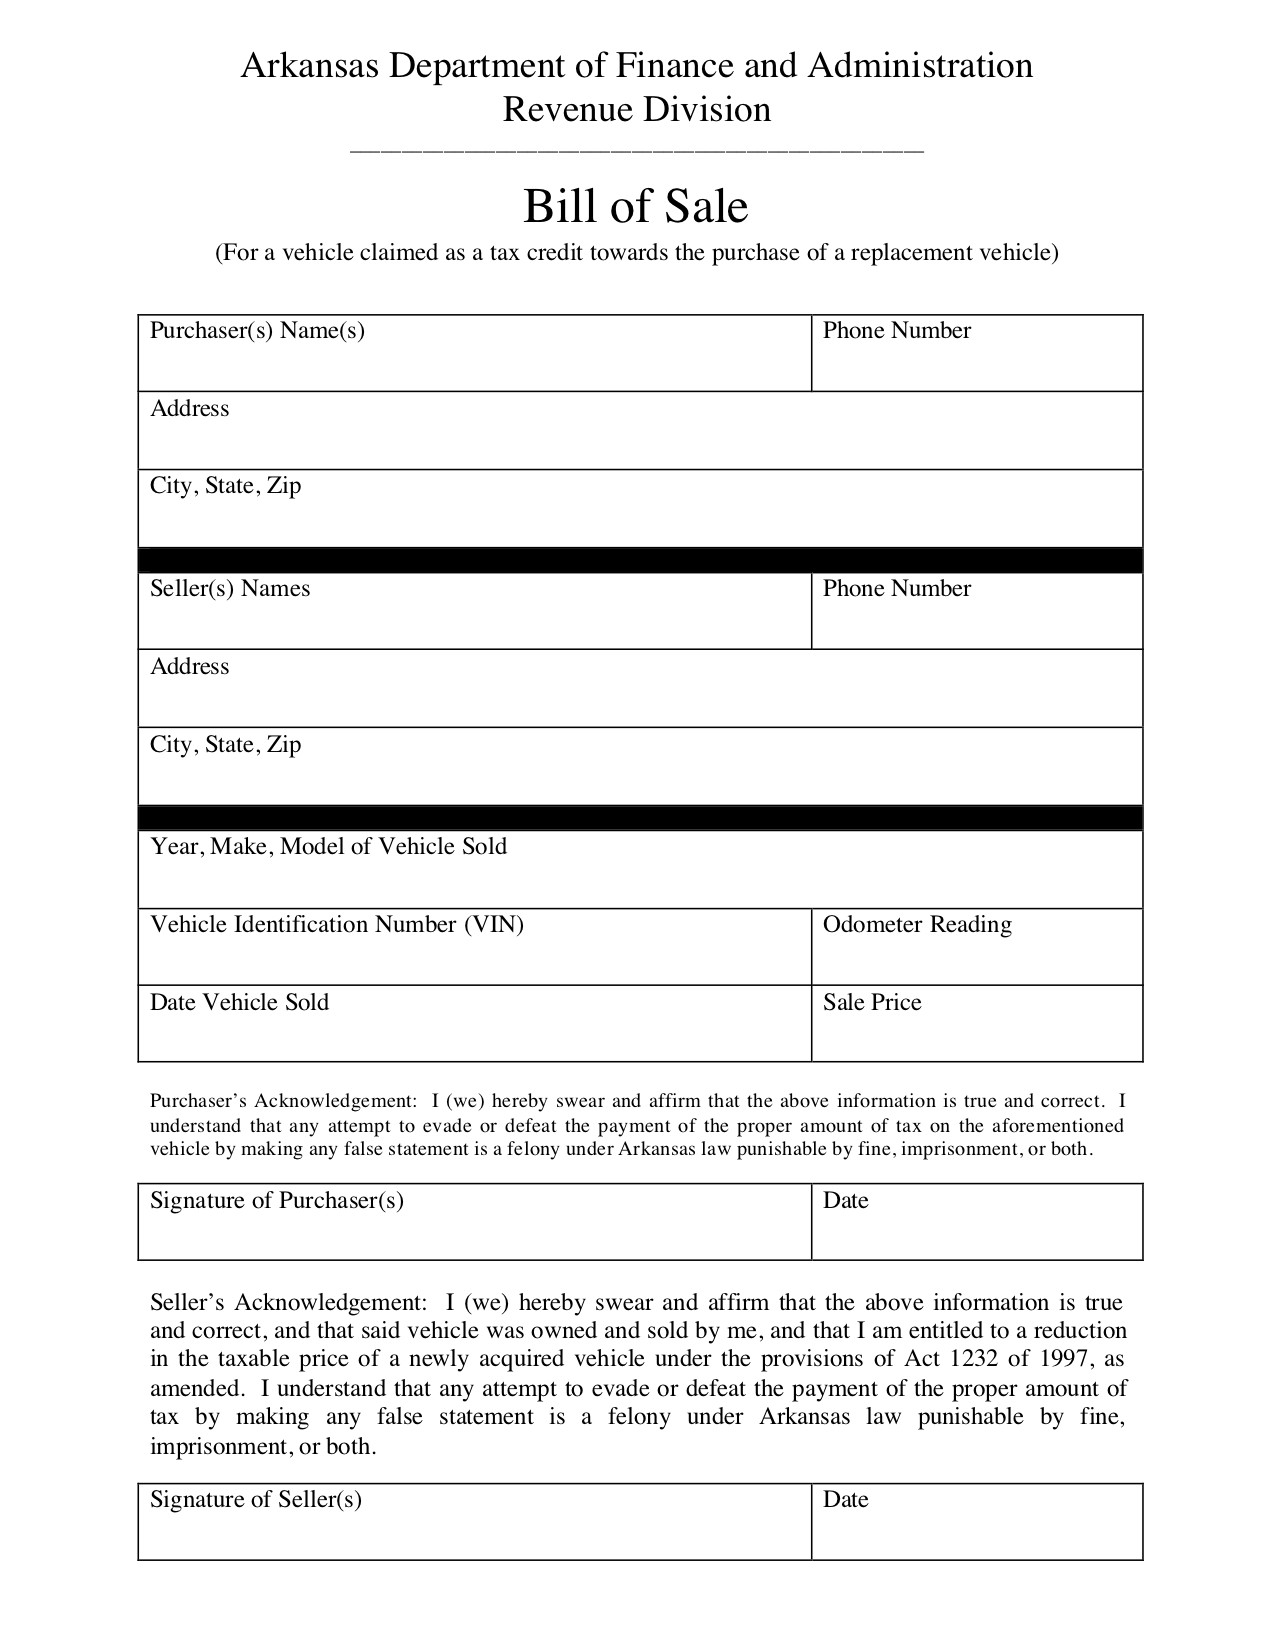 Bill Of Sale Images Free Arkansas Bill Of Sale form Pdf Template